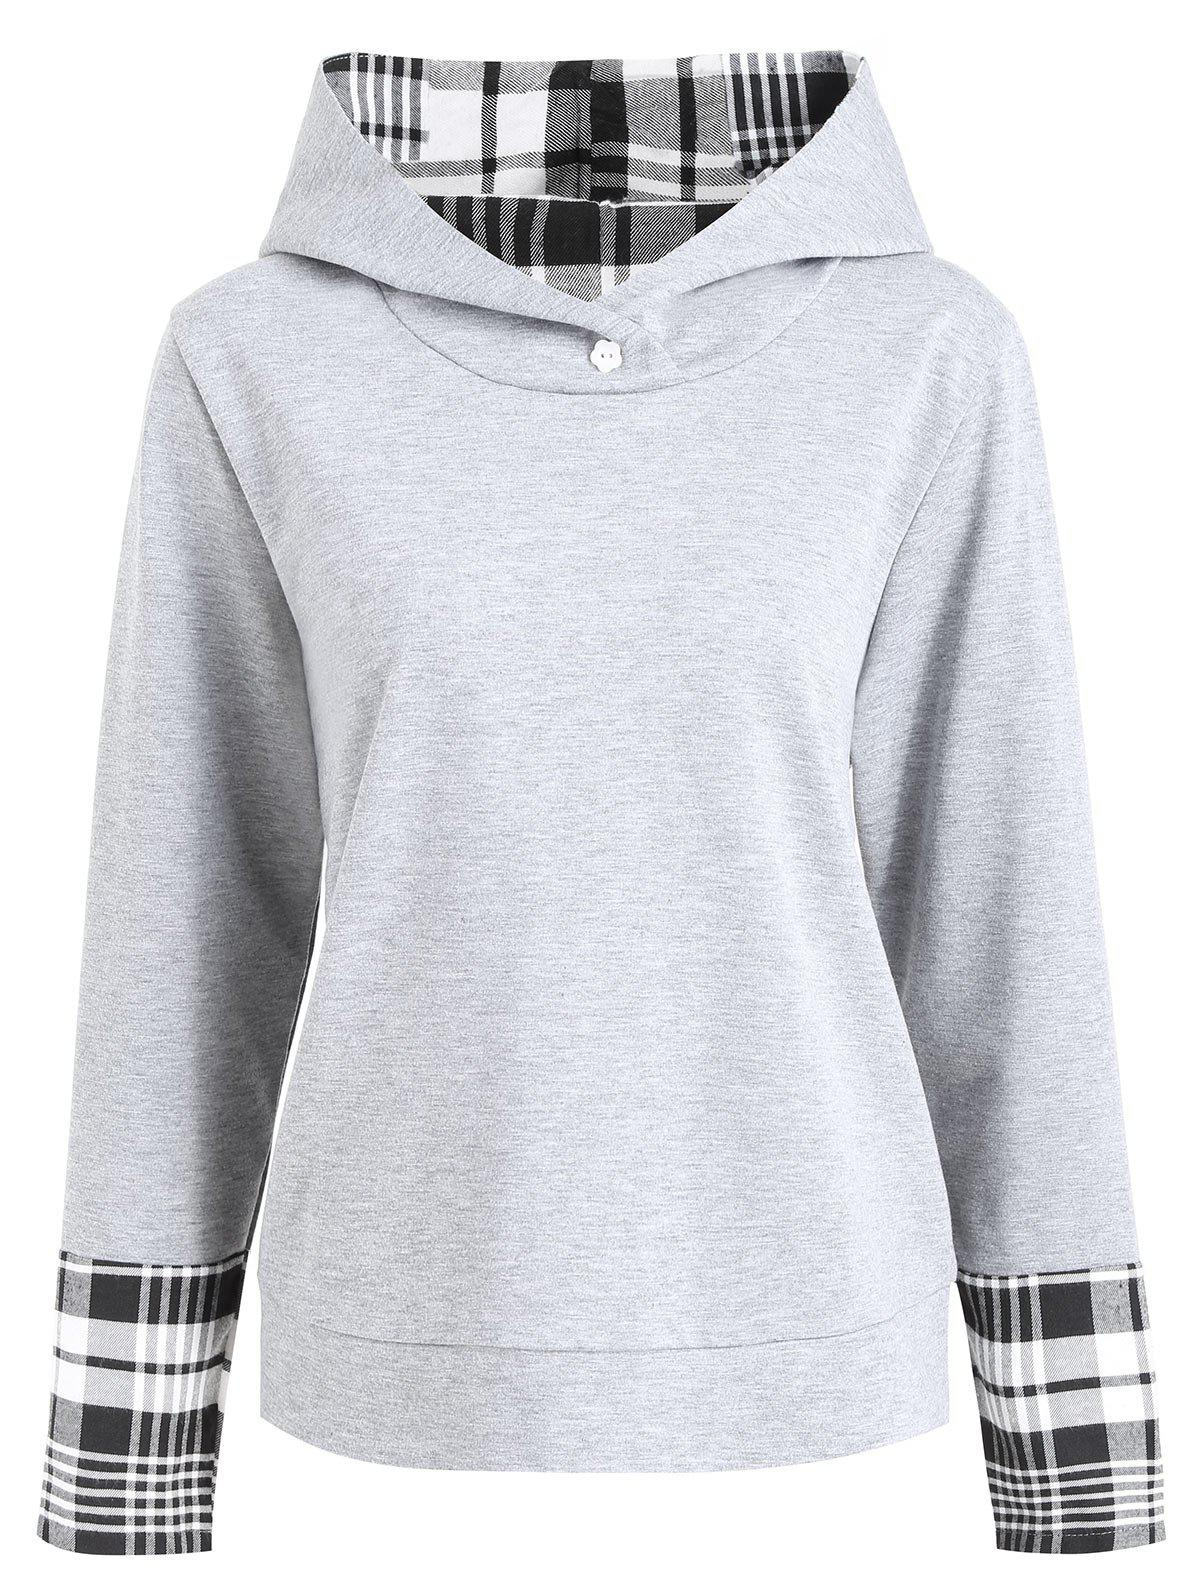 Plus Size Plaid Insert HoodieWOMEN<br><br>Size: 3XL; Color: GRAY; Material: Cotton,Polyester; Shirt Length: Regular; Sleeve Length: Full; Style: Casual; Pattern Style: Plaid; Embellishment: Button; Season: Fall; Weight: 0.4100kg; Package Contents: 1 x Hoodie;